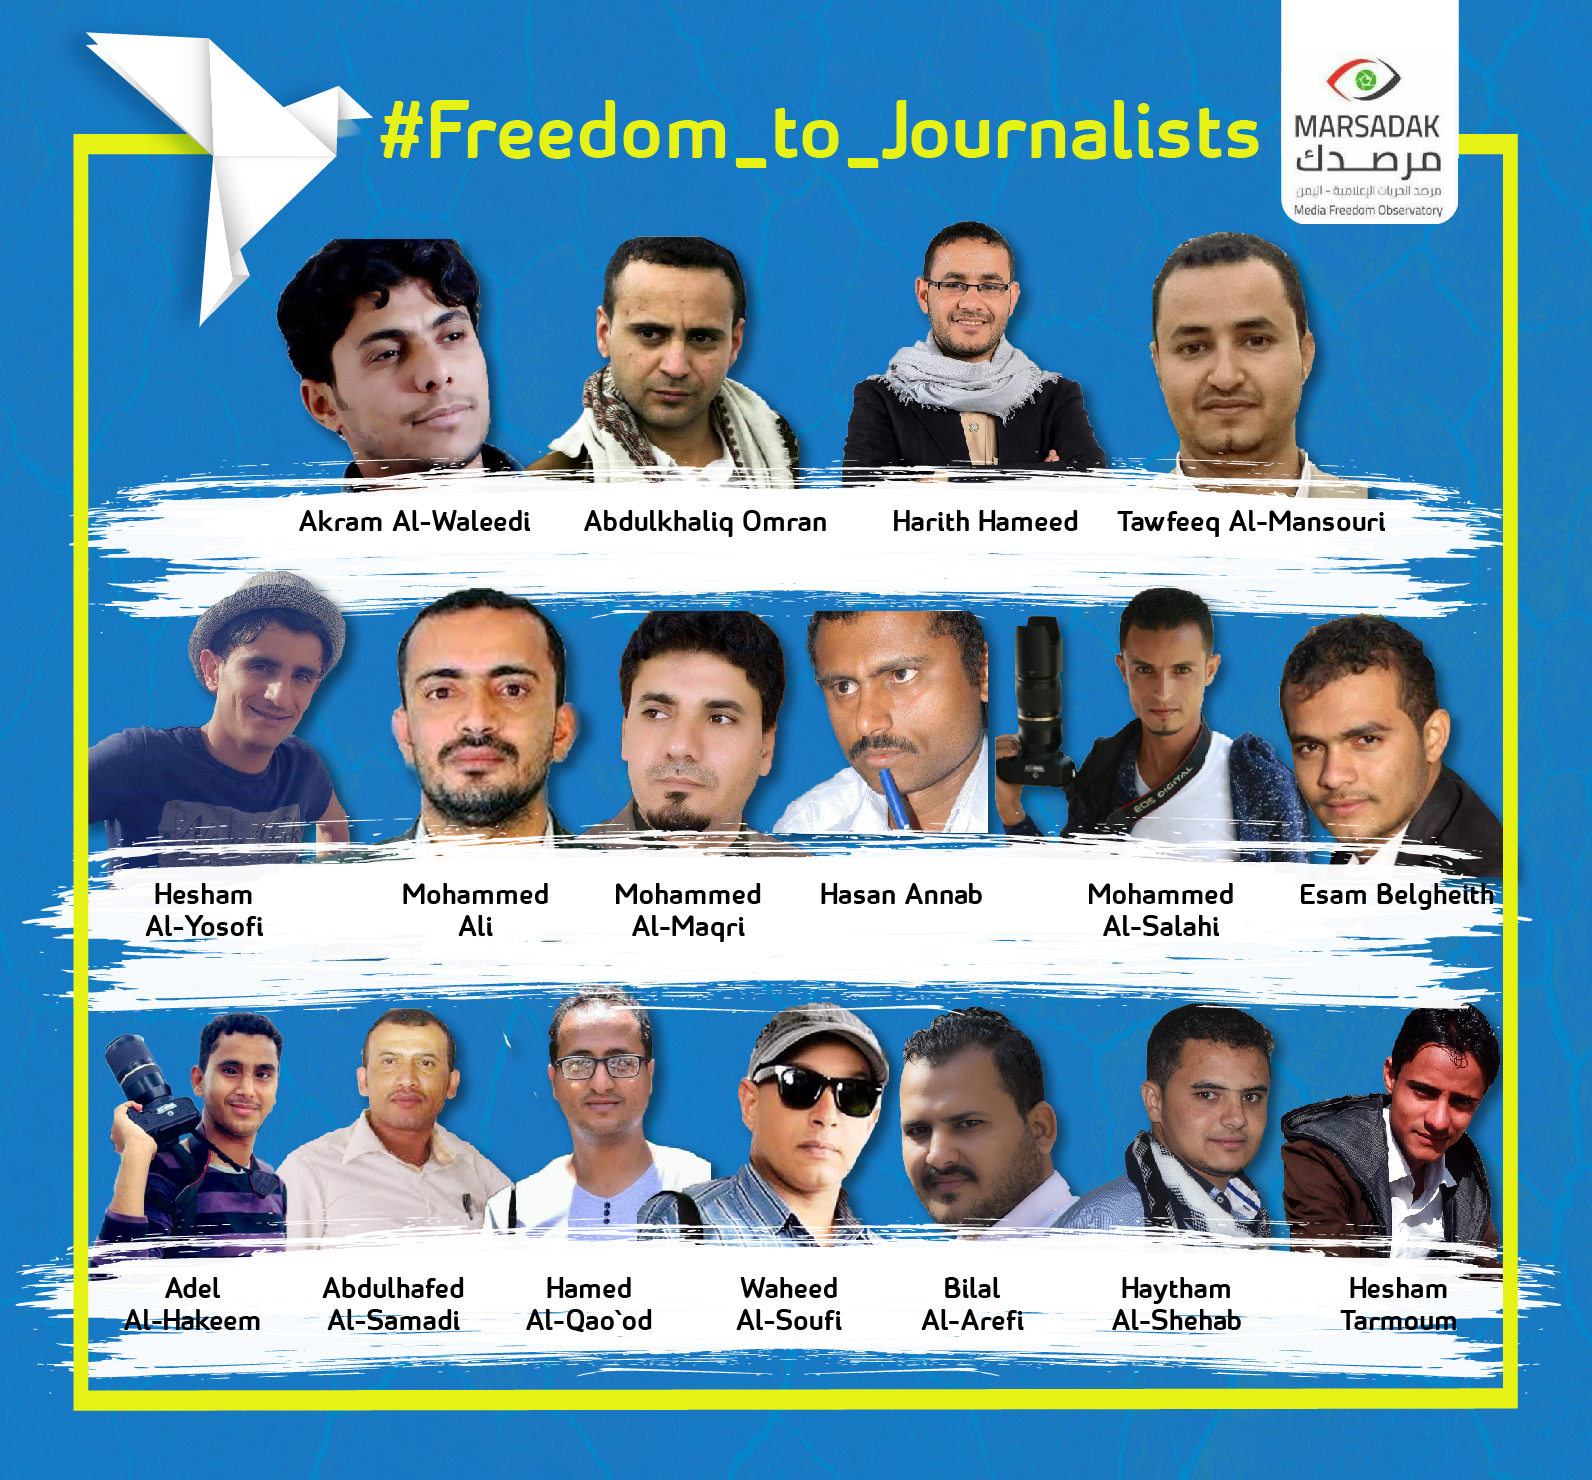 On World Press Freedom Day, Media Freedom Observatory calls for saving journalists from execution